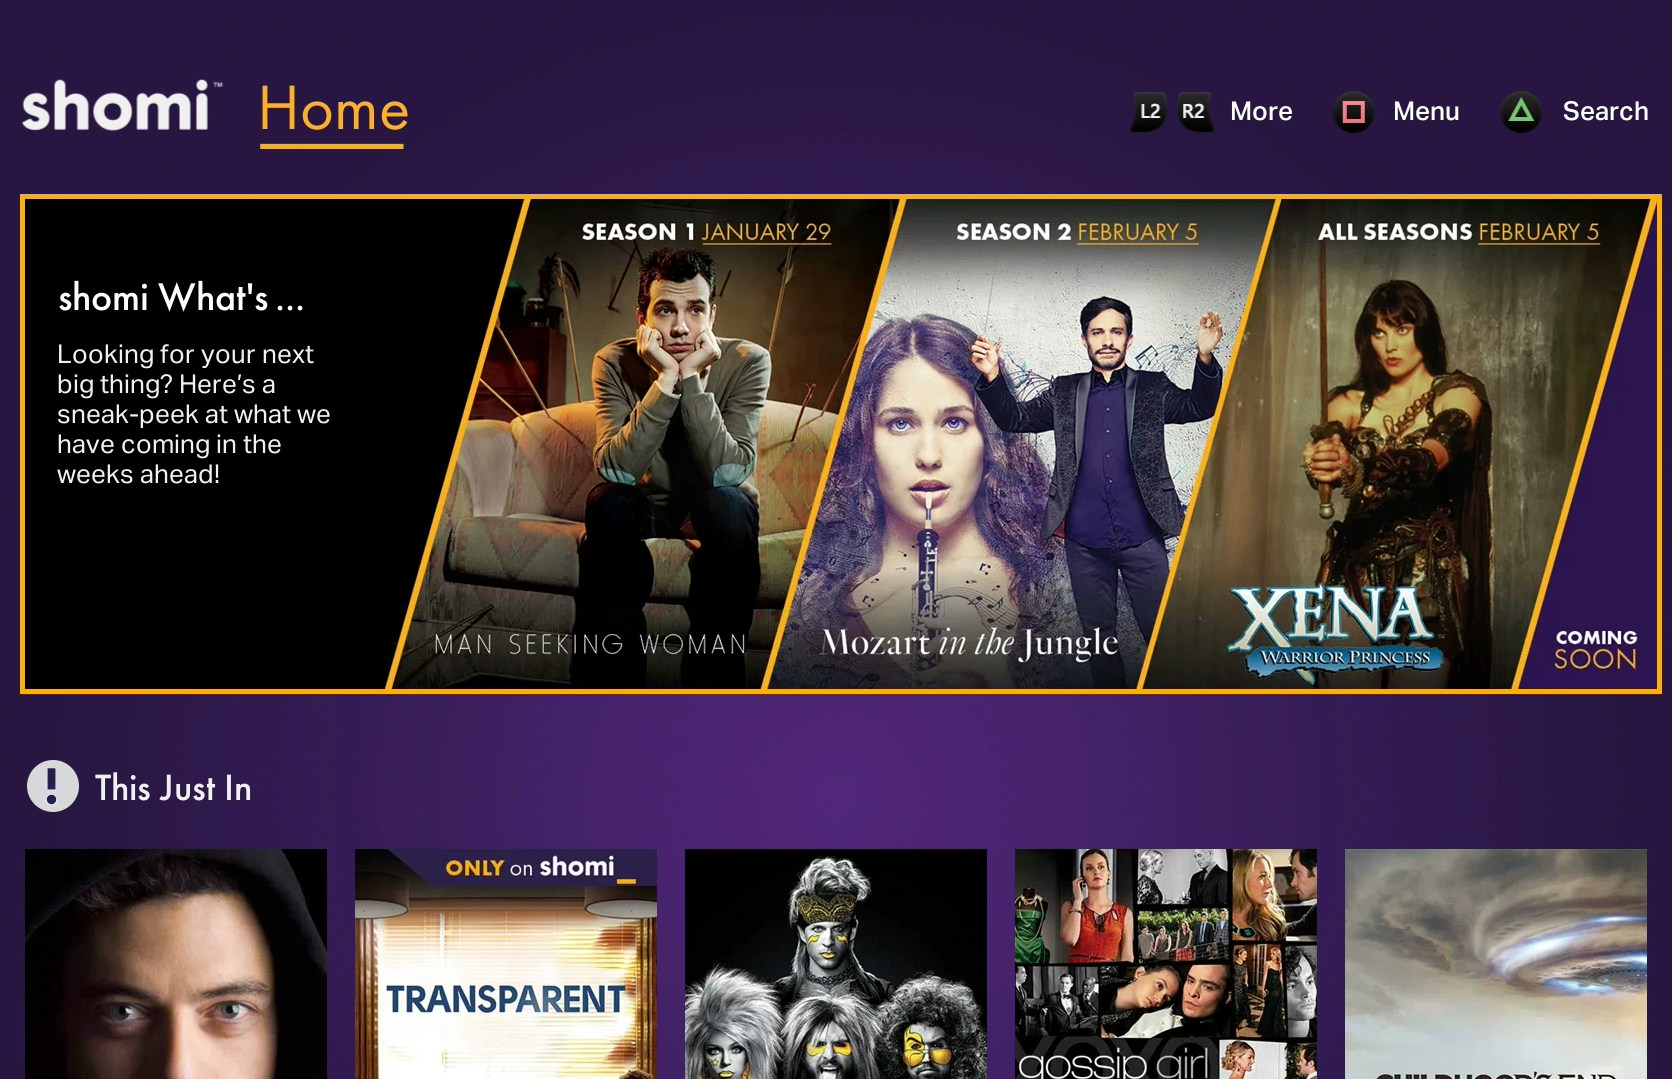 Experience shomi on the PS4 system, now available (CNW Group/shomi)